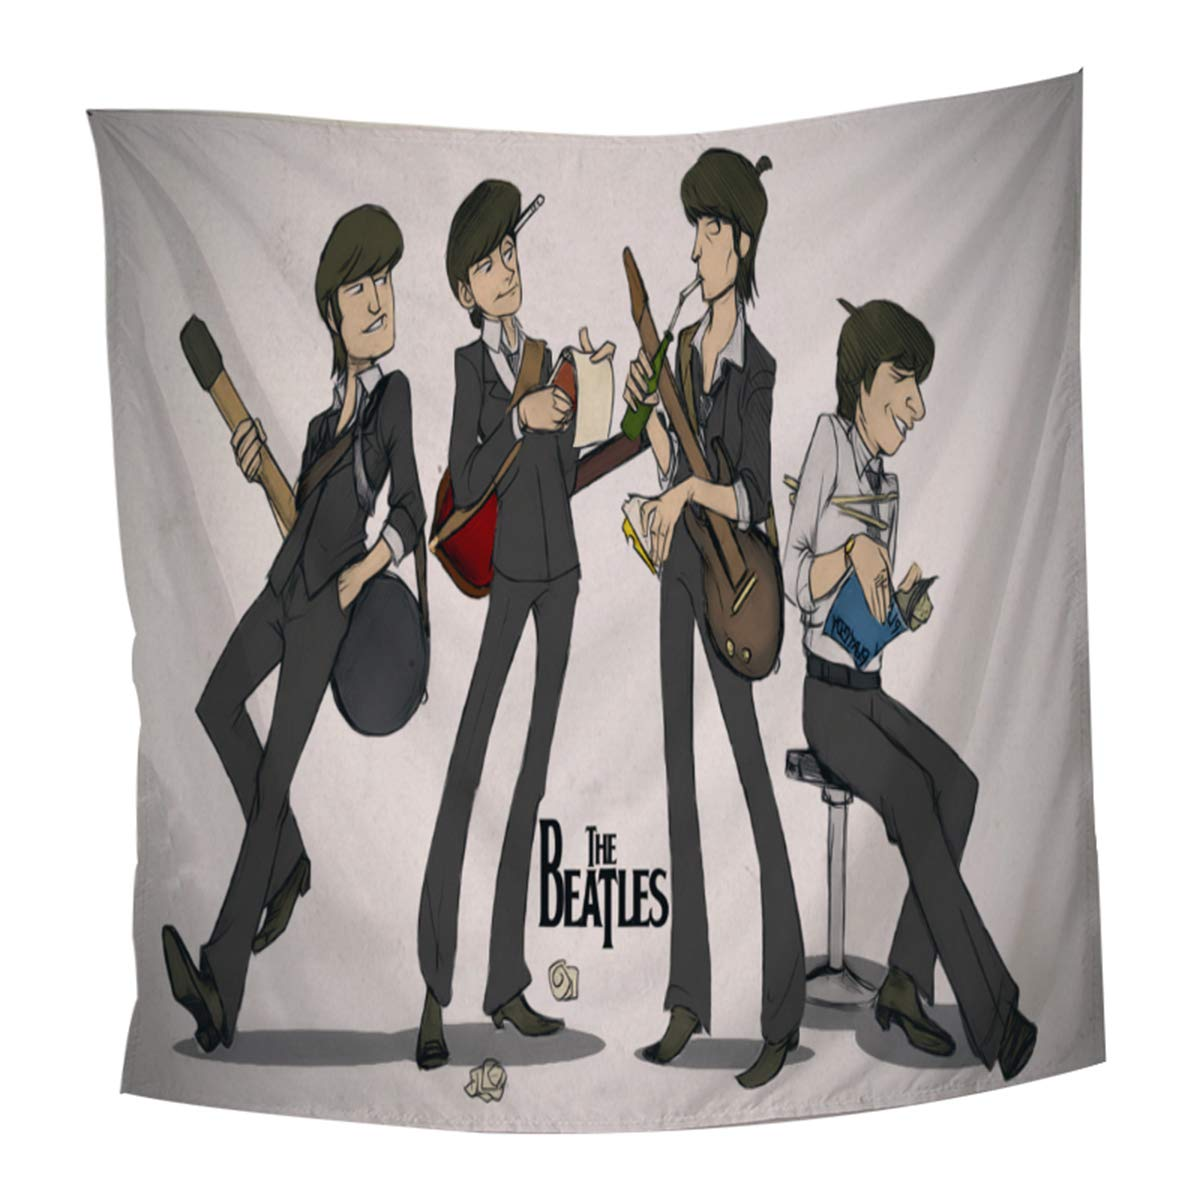 Koongso The Beatles Wall Hanging Tapestry Hippie Handicraft Decoration Beach Blanket for Bedroom Dorm Decor 51 W x 60 L